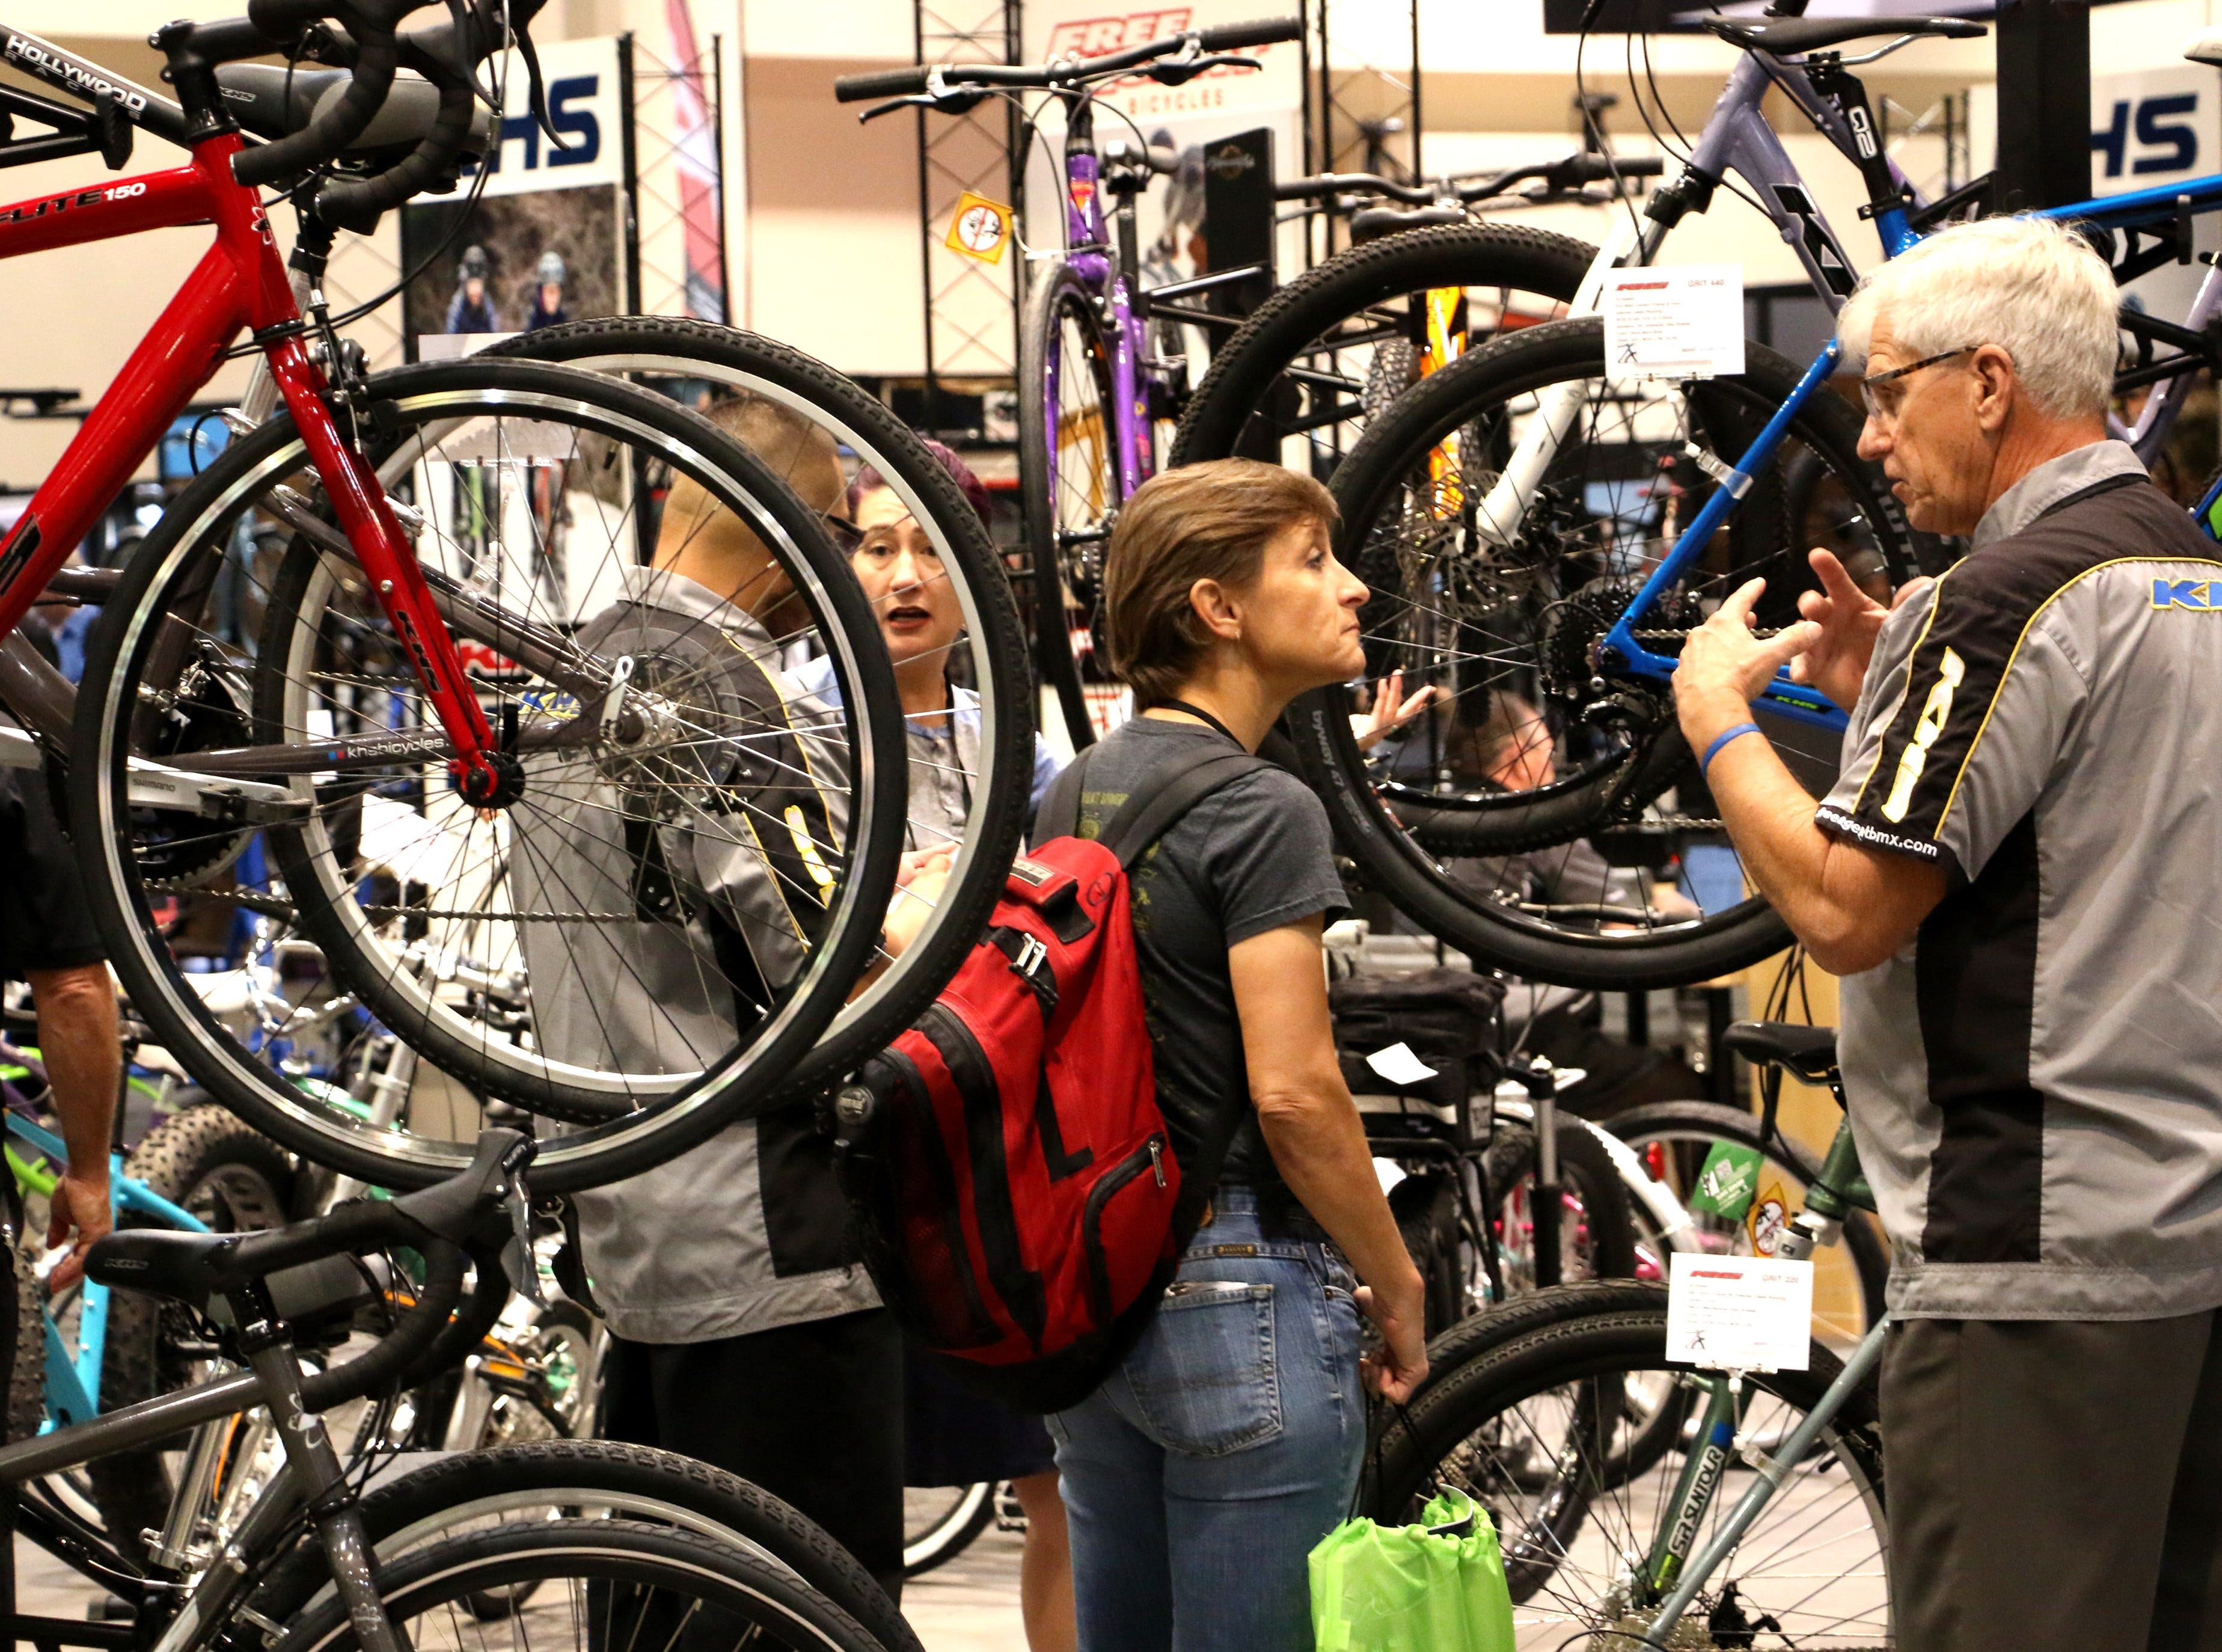 People are seen doing business at the Interbike Expo at the Reno-Sparks Convention Center in Reno on Sept. 19, 2018.